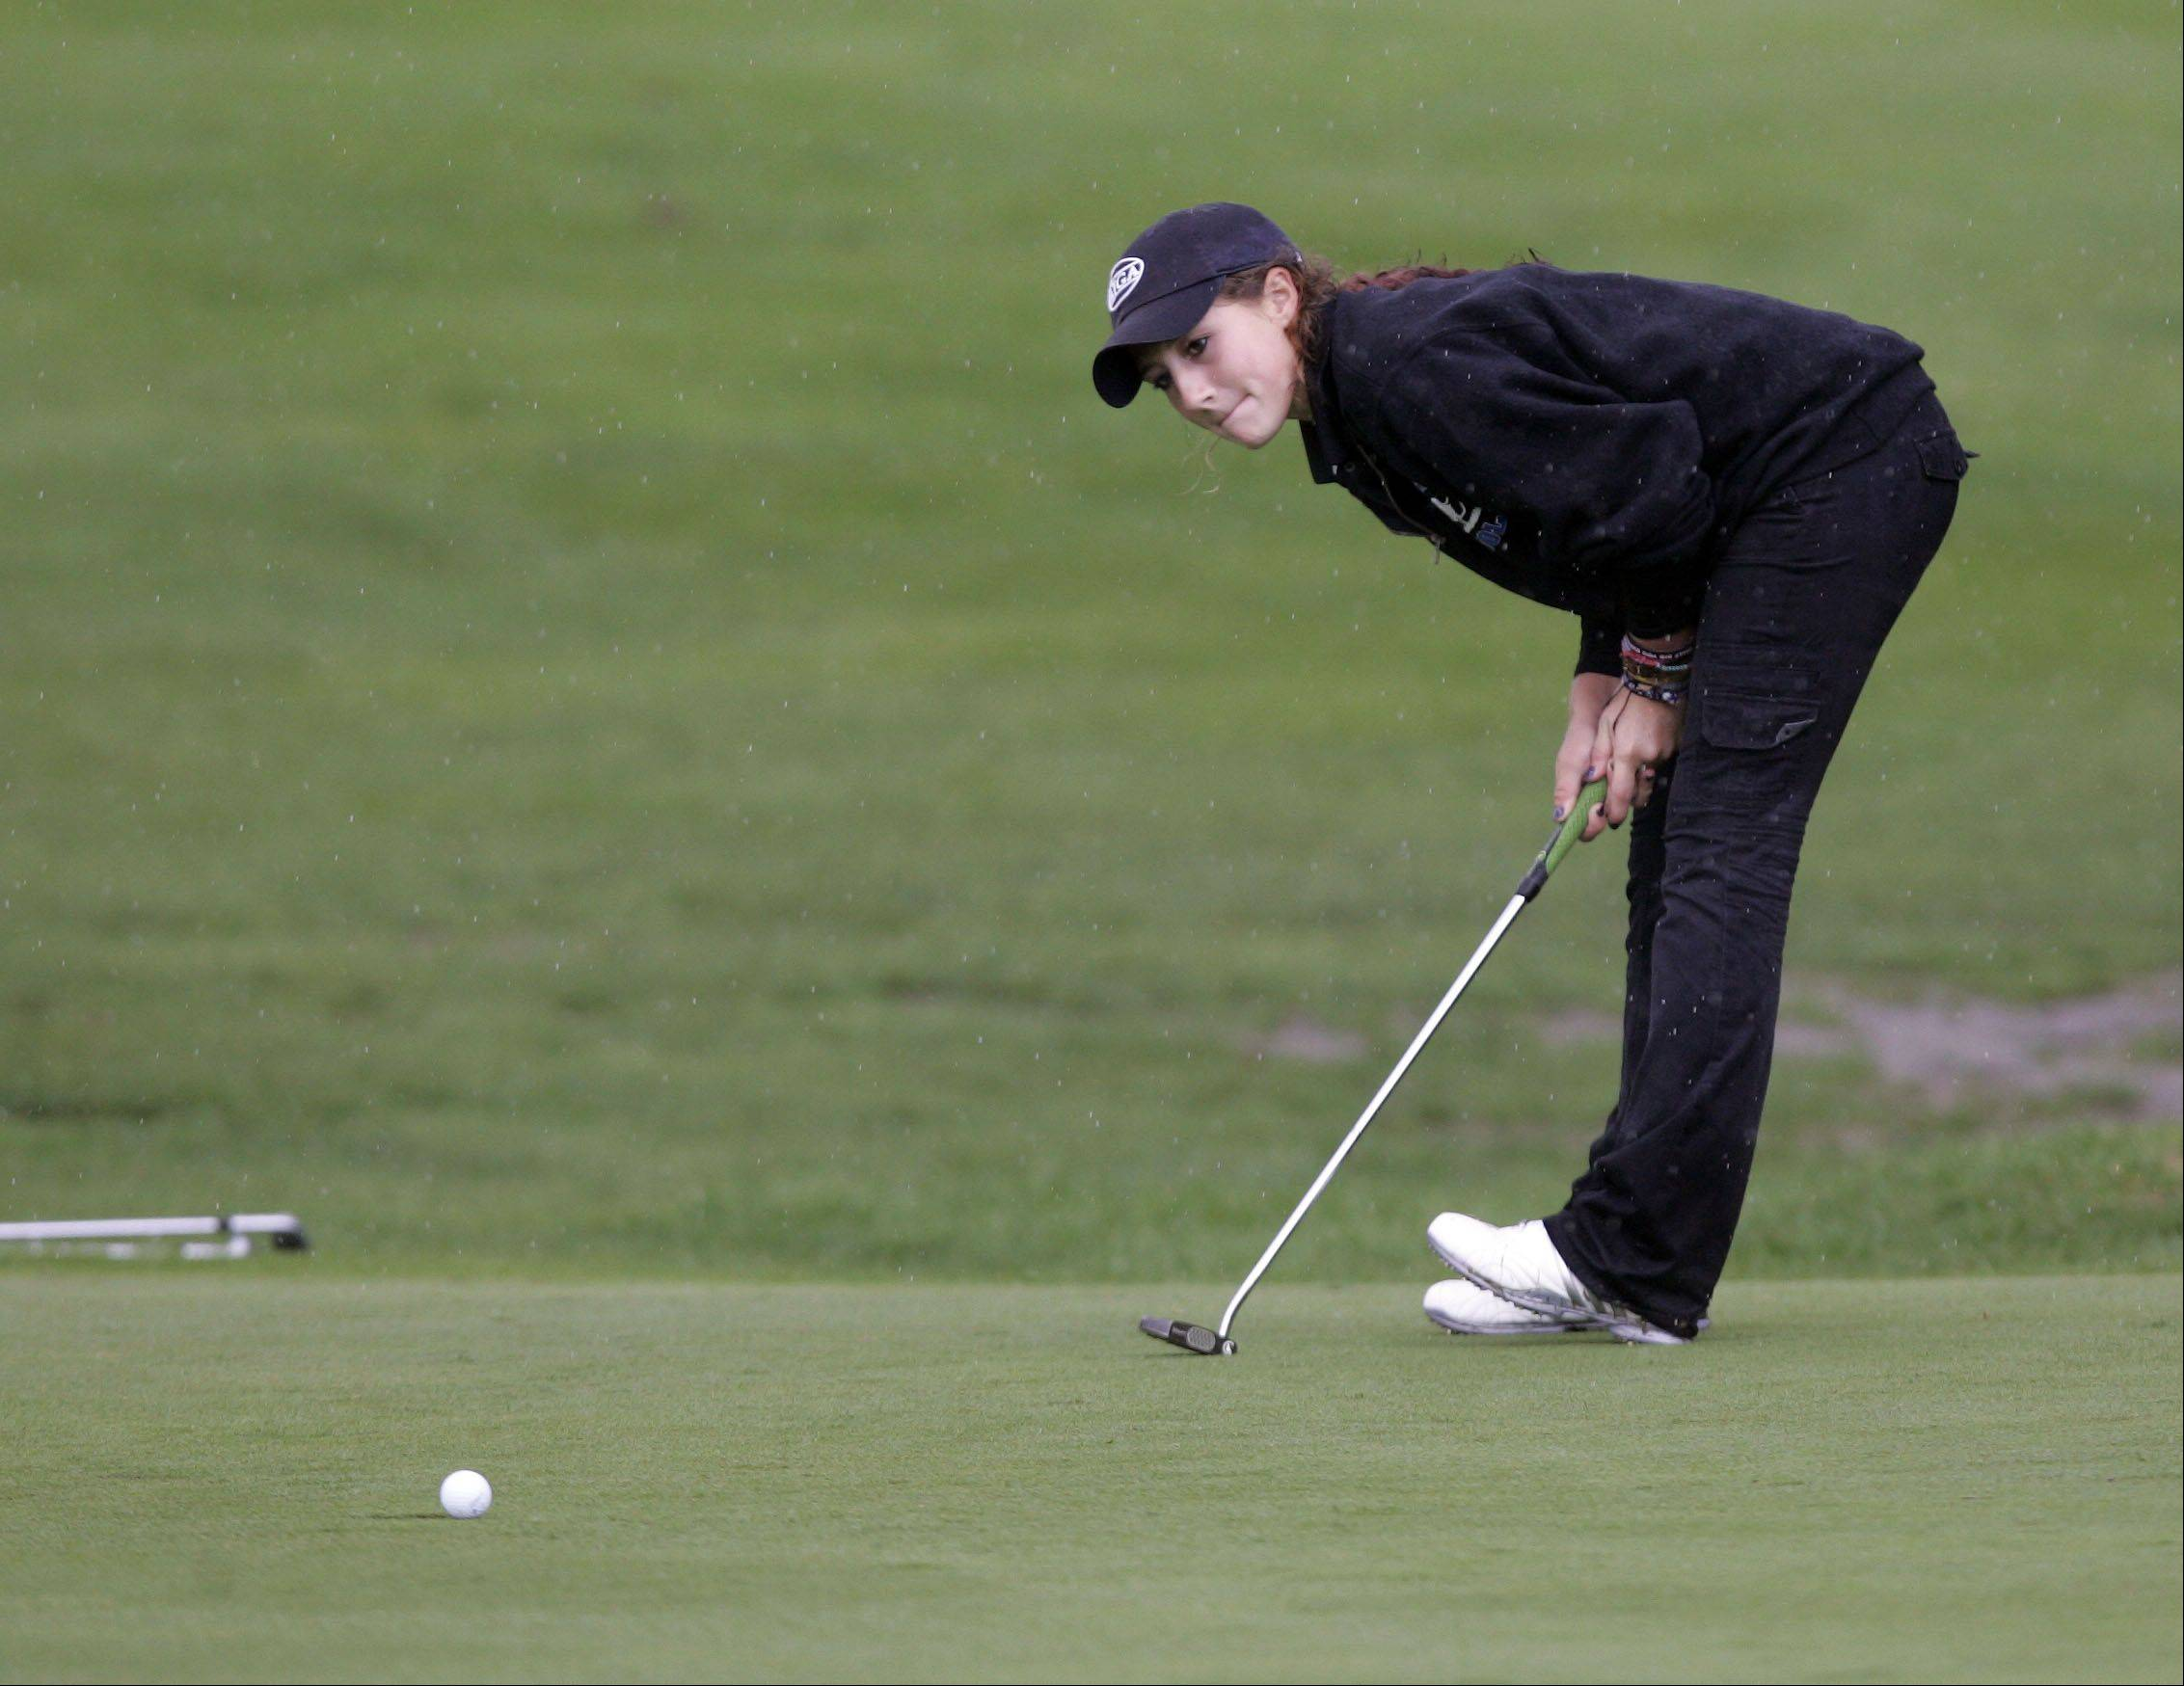 Brian Hill/bhill@dailyherald.com � St. Charles North's Ariana Furrie watches her putt on the 15th green during the Upstate Eight Conference IHSA girls golf tournament at St. Andrews Golf Club in West Chicago Tuesday, September 27, 2011. group 1 �